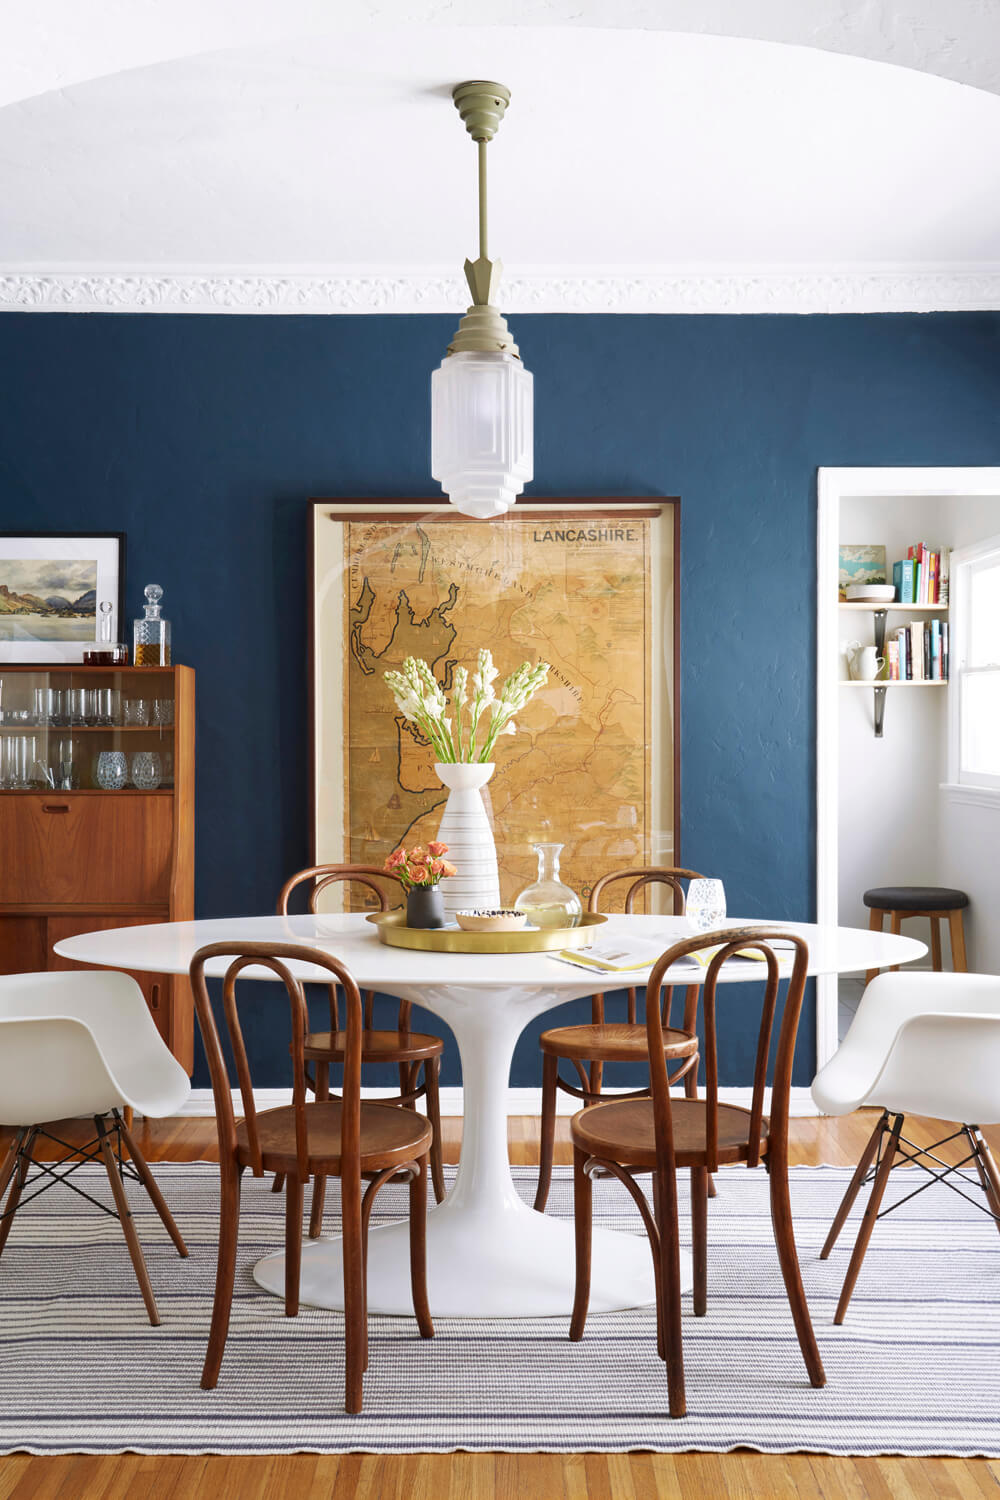 Modern Traditional dining room from Emily Henderson. Paint color: Farrow & Ball Stiffkey Blue